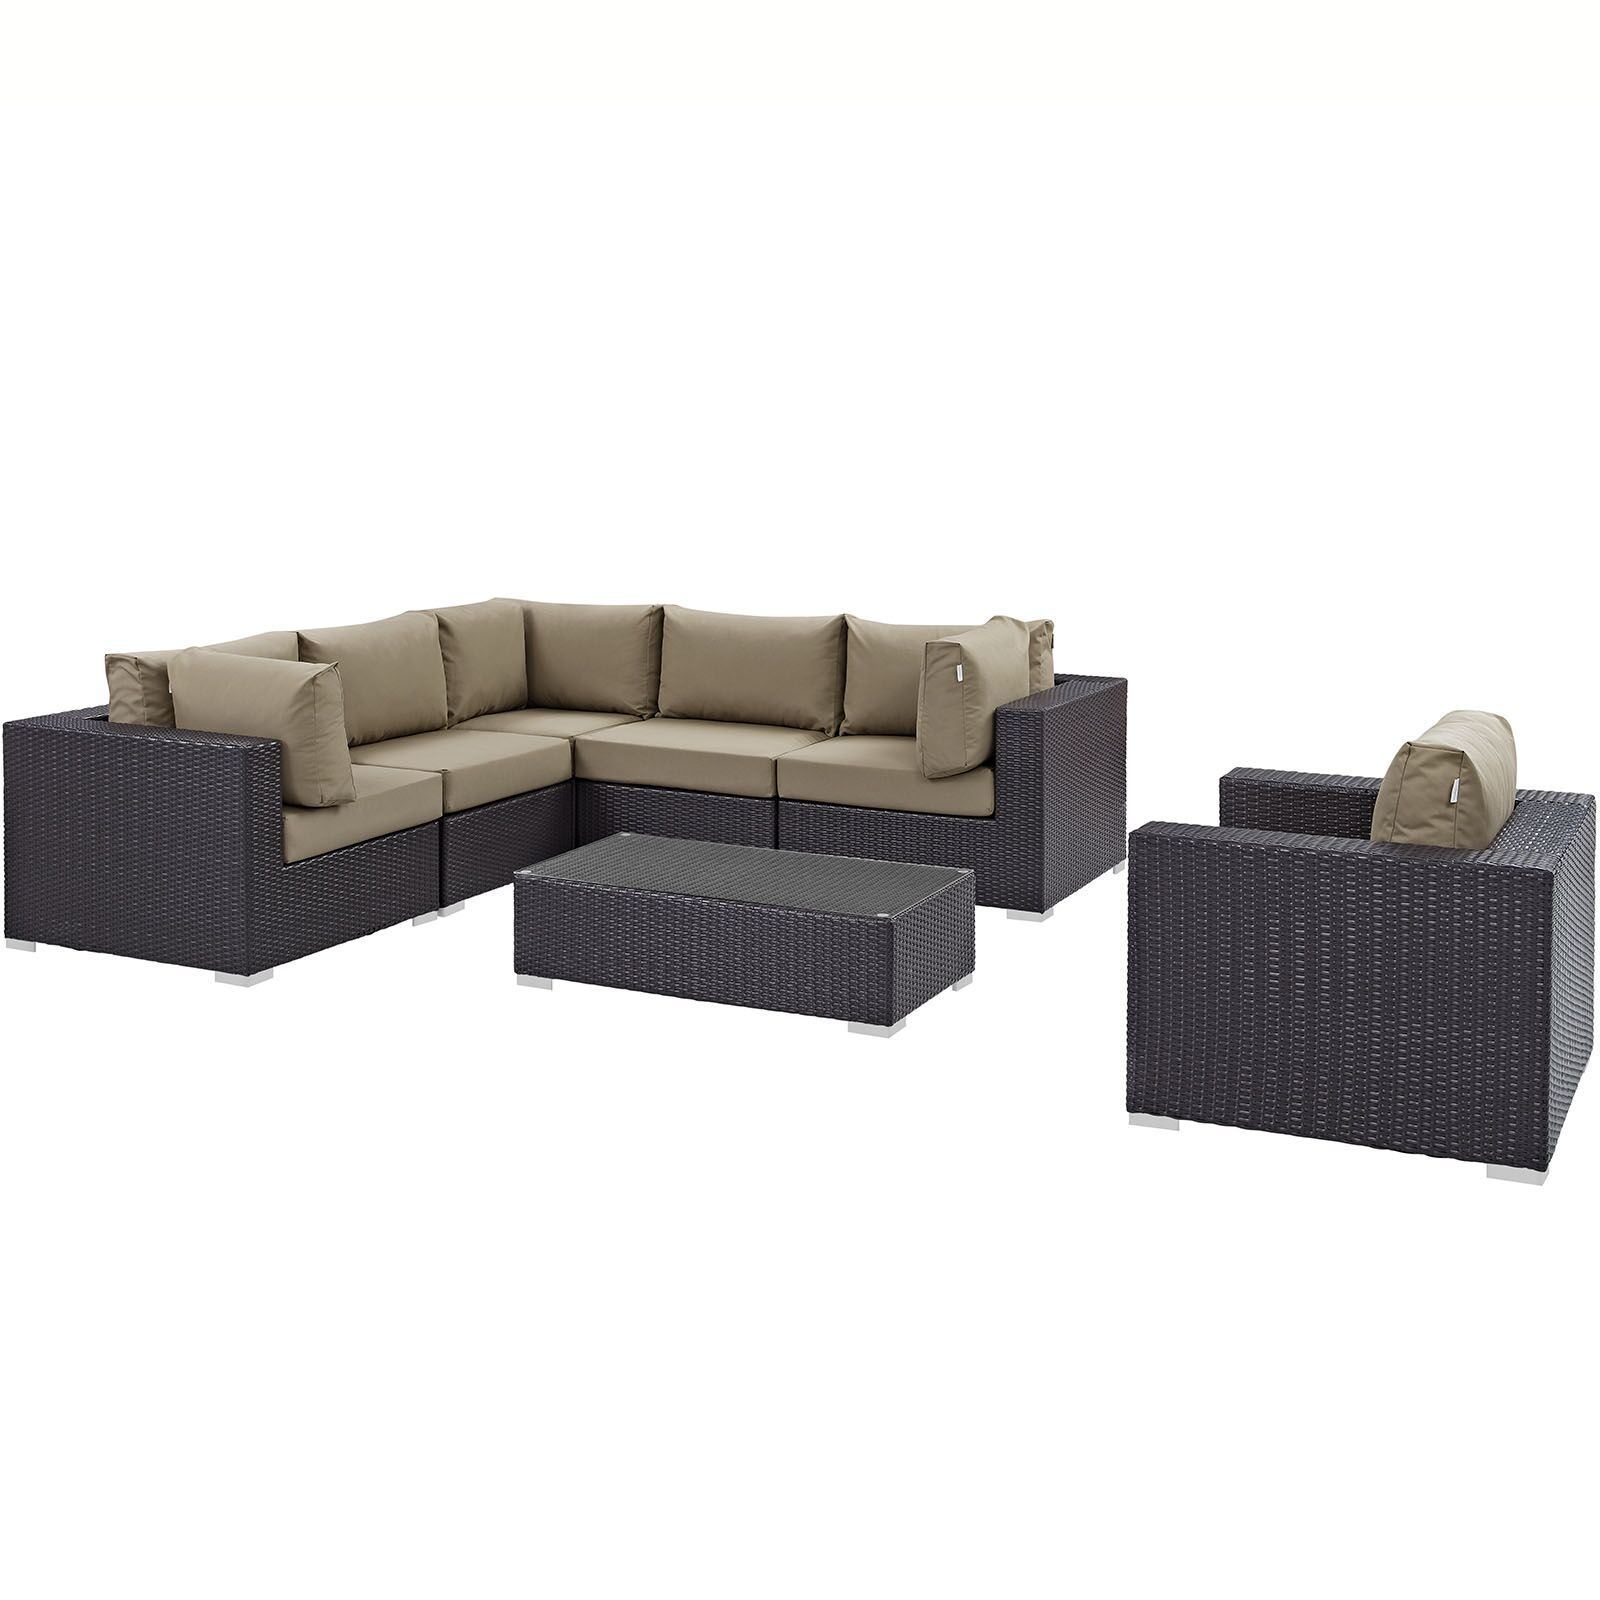 Ryele 7 Piece Rattan Sectional Set with Cushions Fabric: Mocha